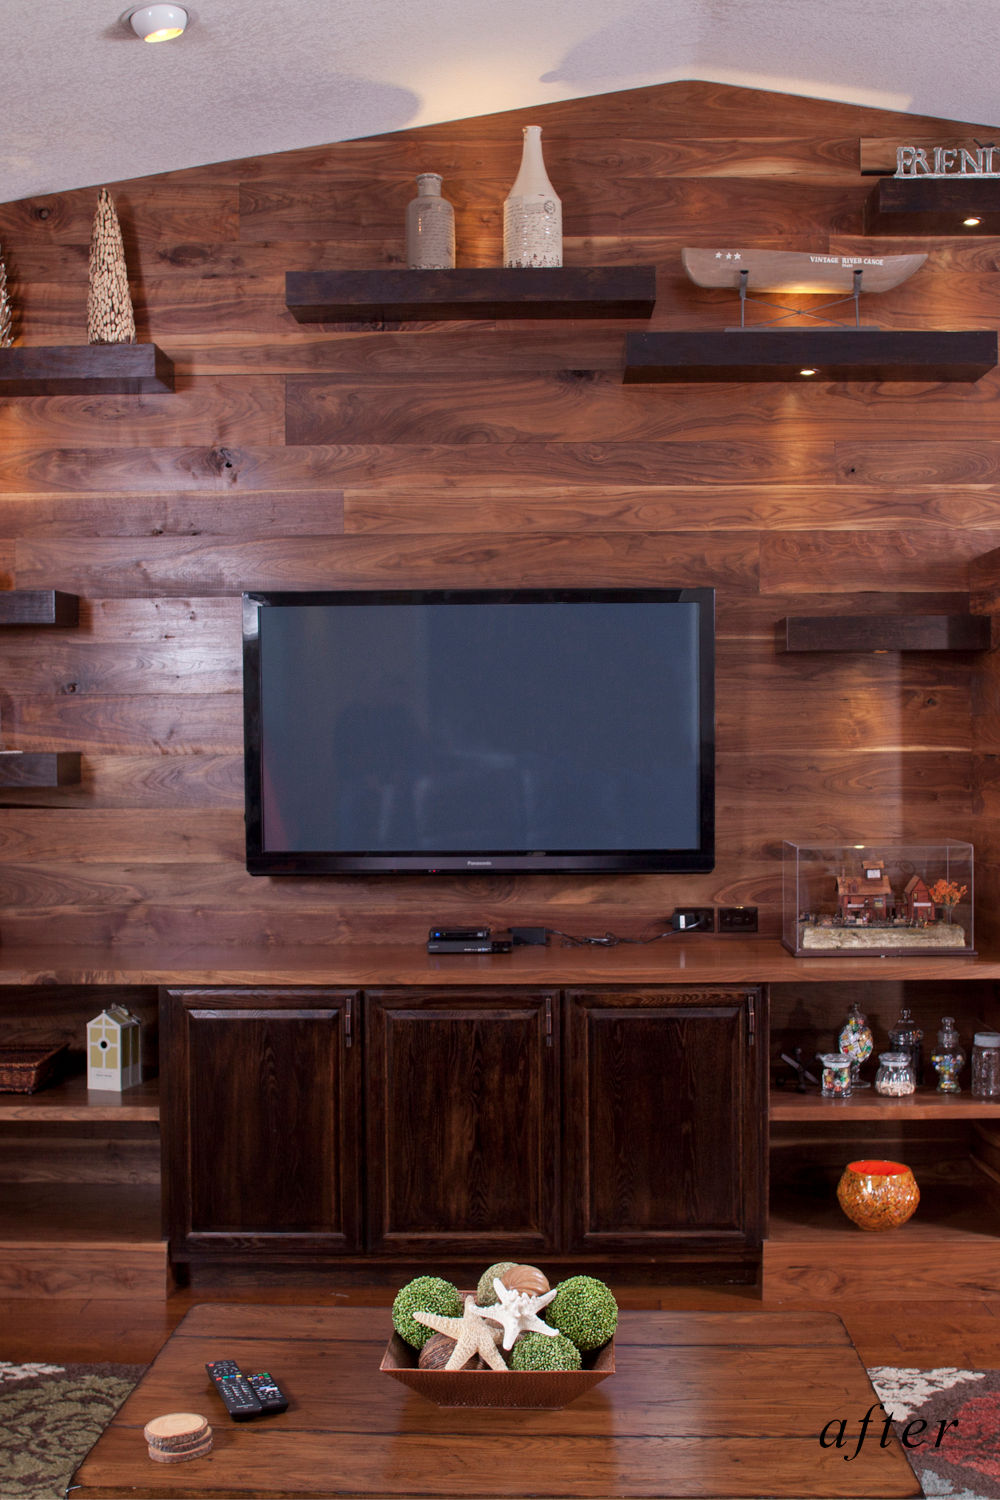 After remodel image: American walnut paneled wall as new family room entertainment center.